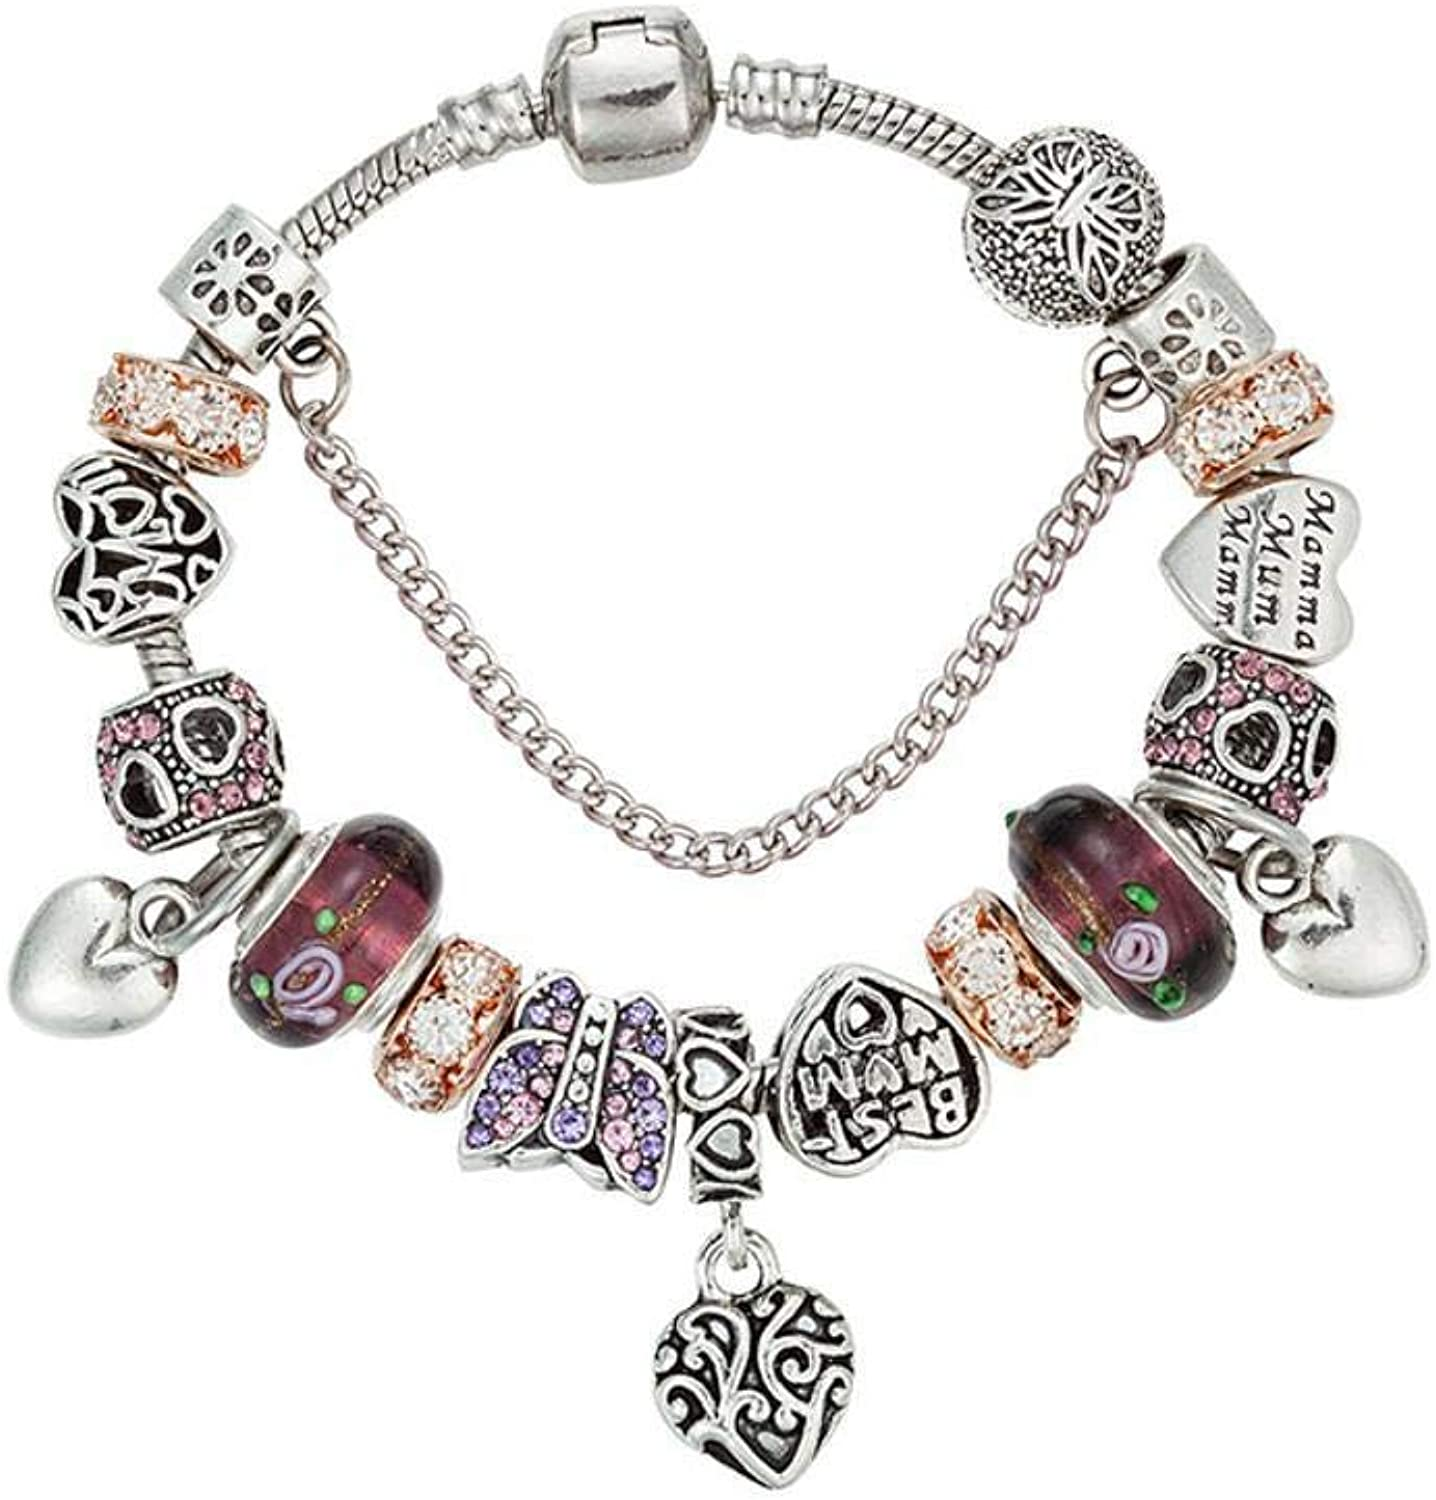 Zicue Stylish Charming Bracelet Exquisite Ornaments Women's Bracelet,Peach Heart Butterfly Alloy Inlaid Jewel Glass Bead Electroplating ( Size   20cm )